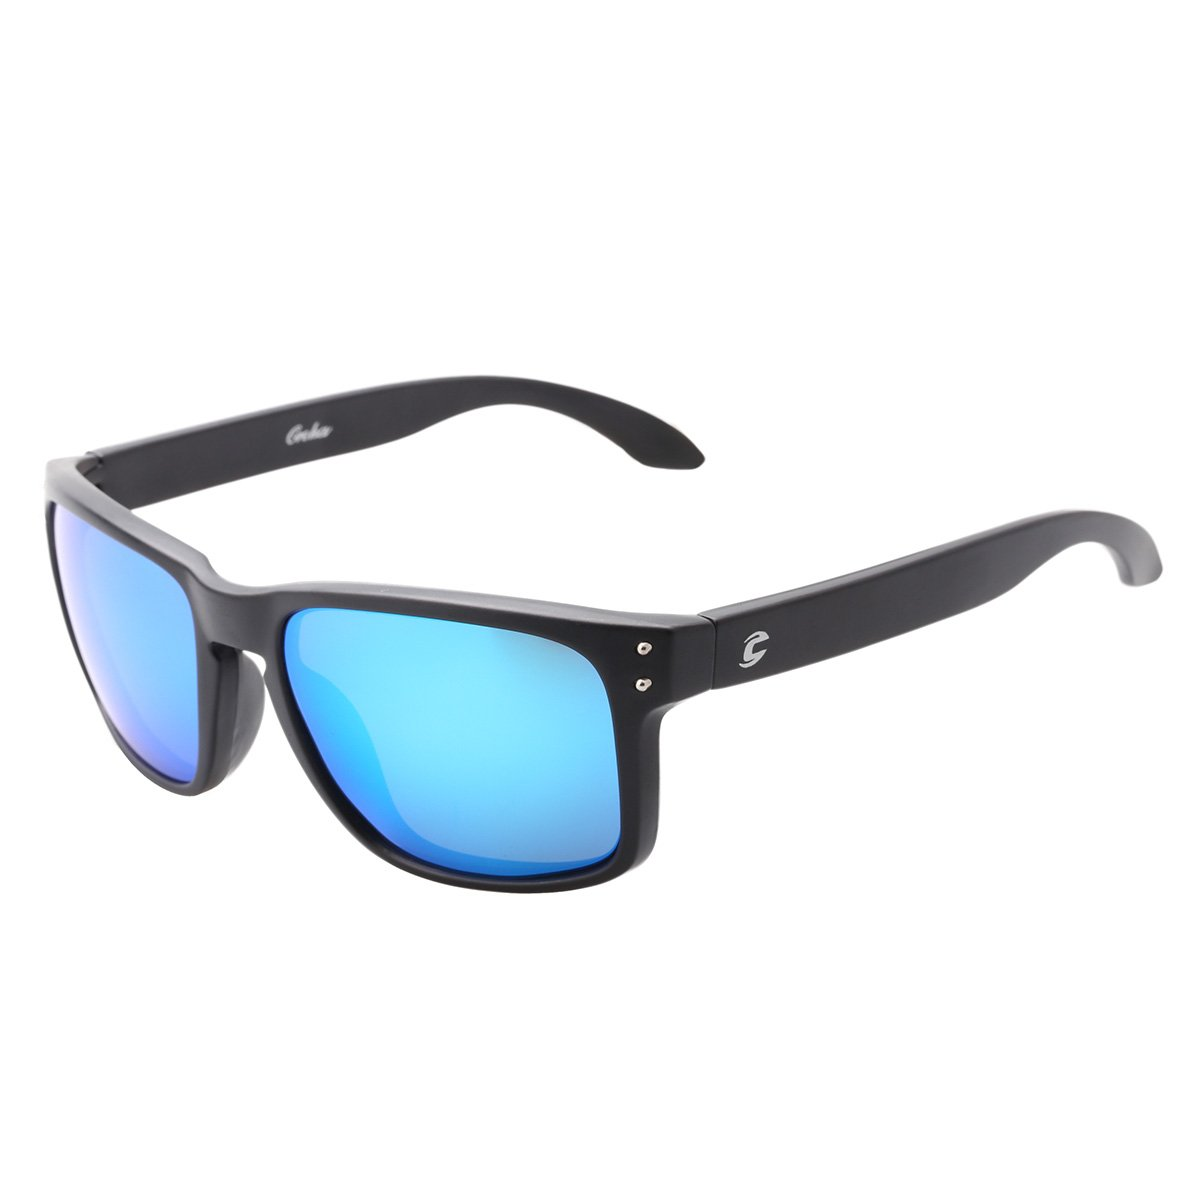 100be24cb2 Amazon.com  Mobike Polarized Wayfarer Sunglasses Reflective Color Full  Mirrored Lens  Clothing